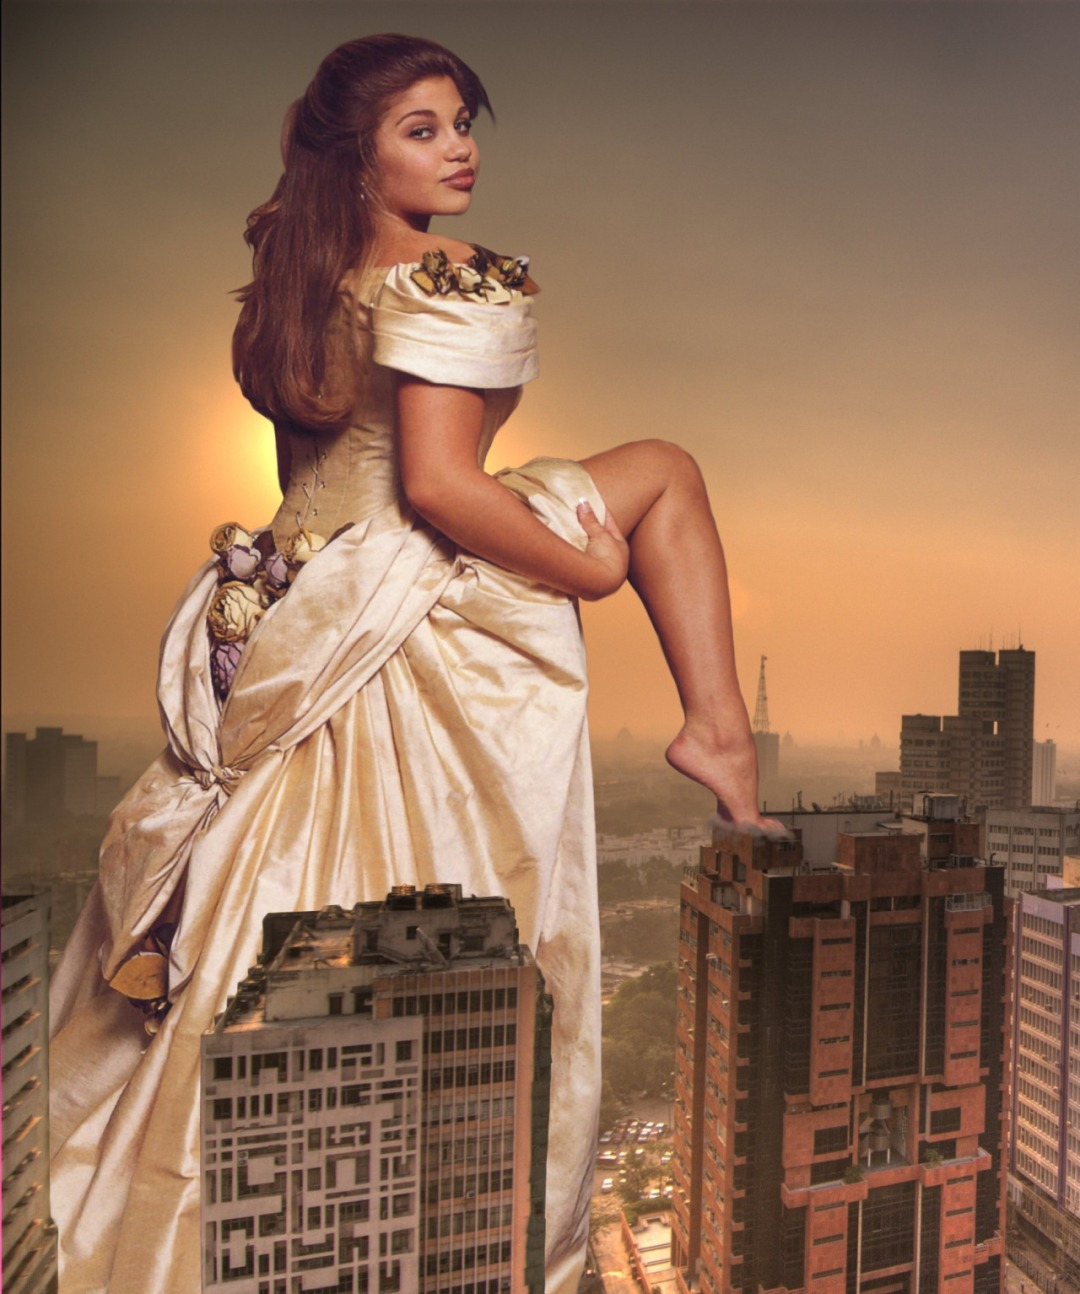 Young woman in bridal gown stands taller than buildings.